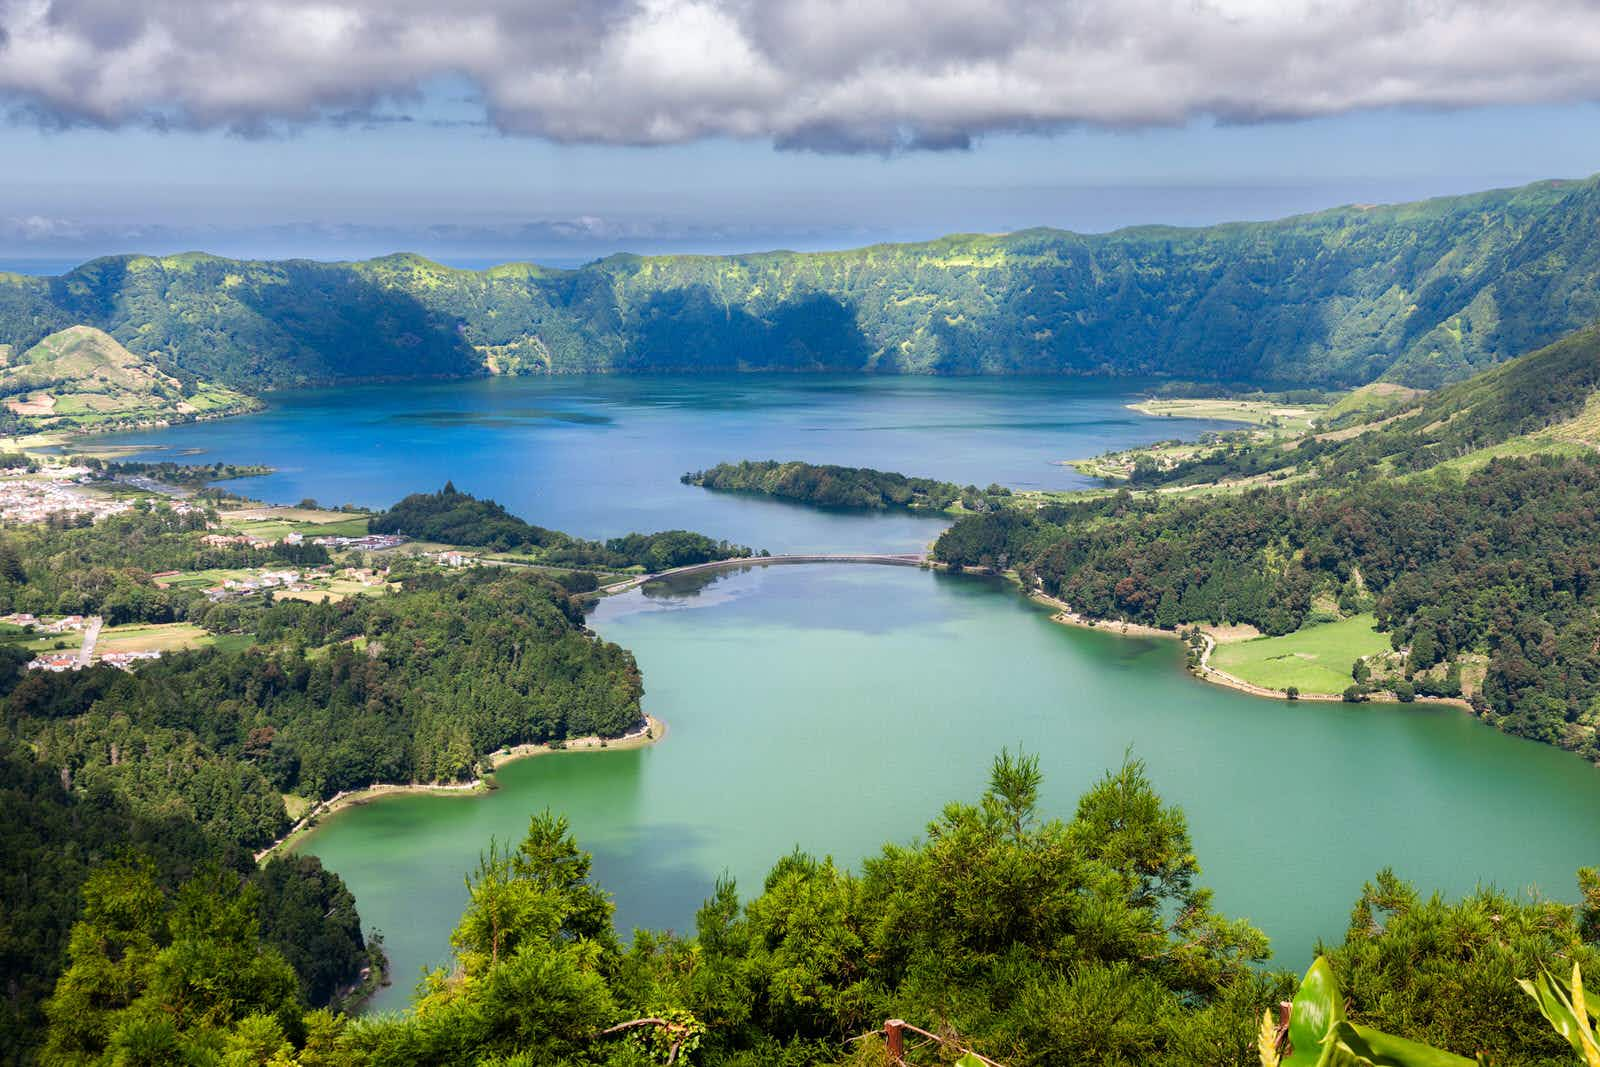 The twin blue and green lakes of Sete Cidades from the Vista do Rei viewpoint © peresanz / Shutterstock